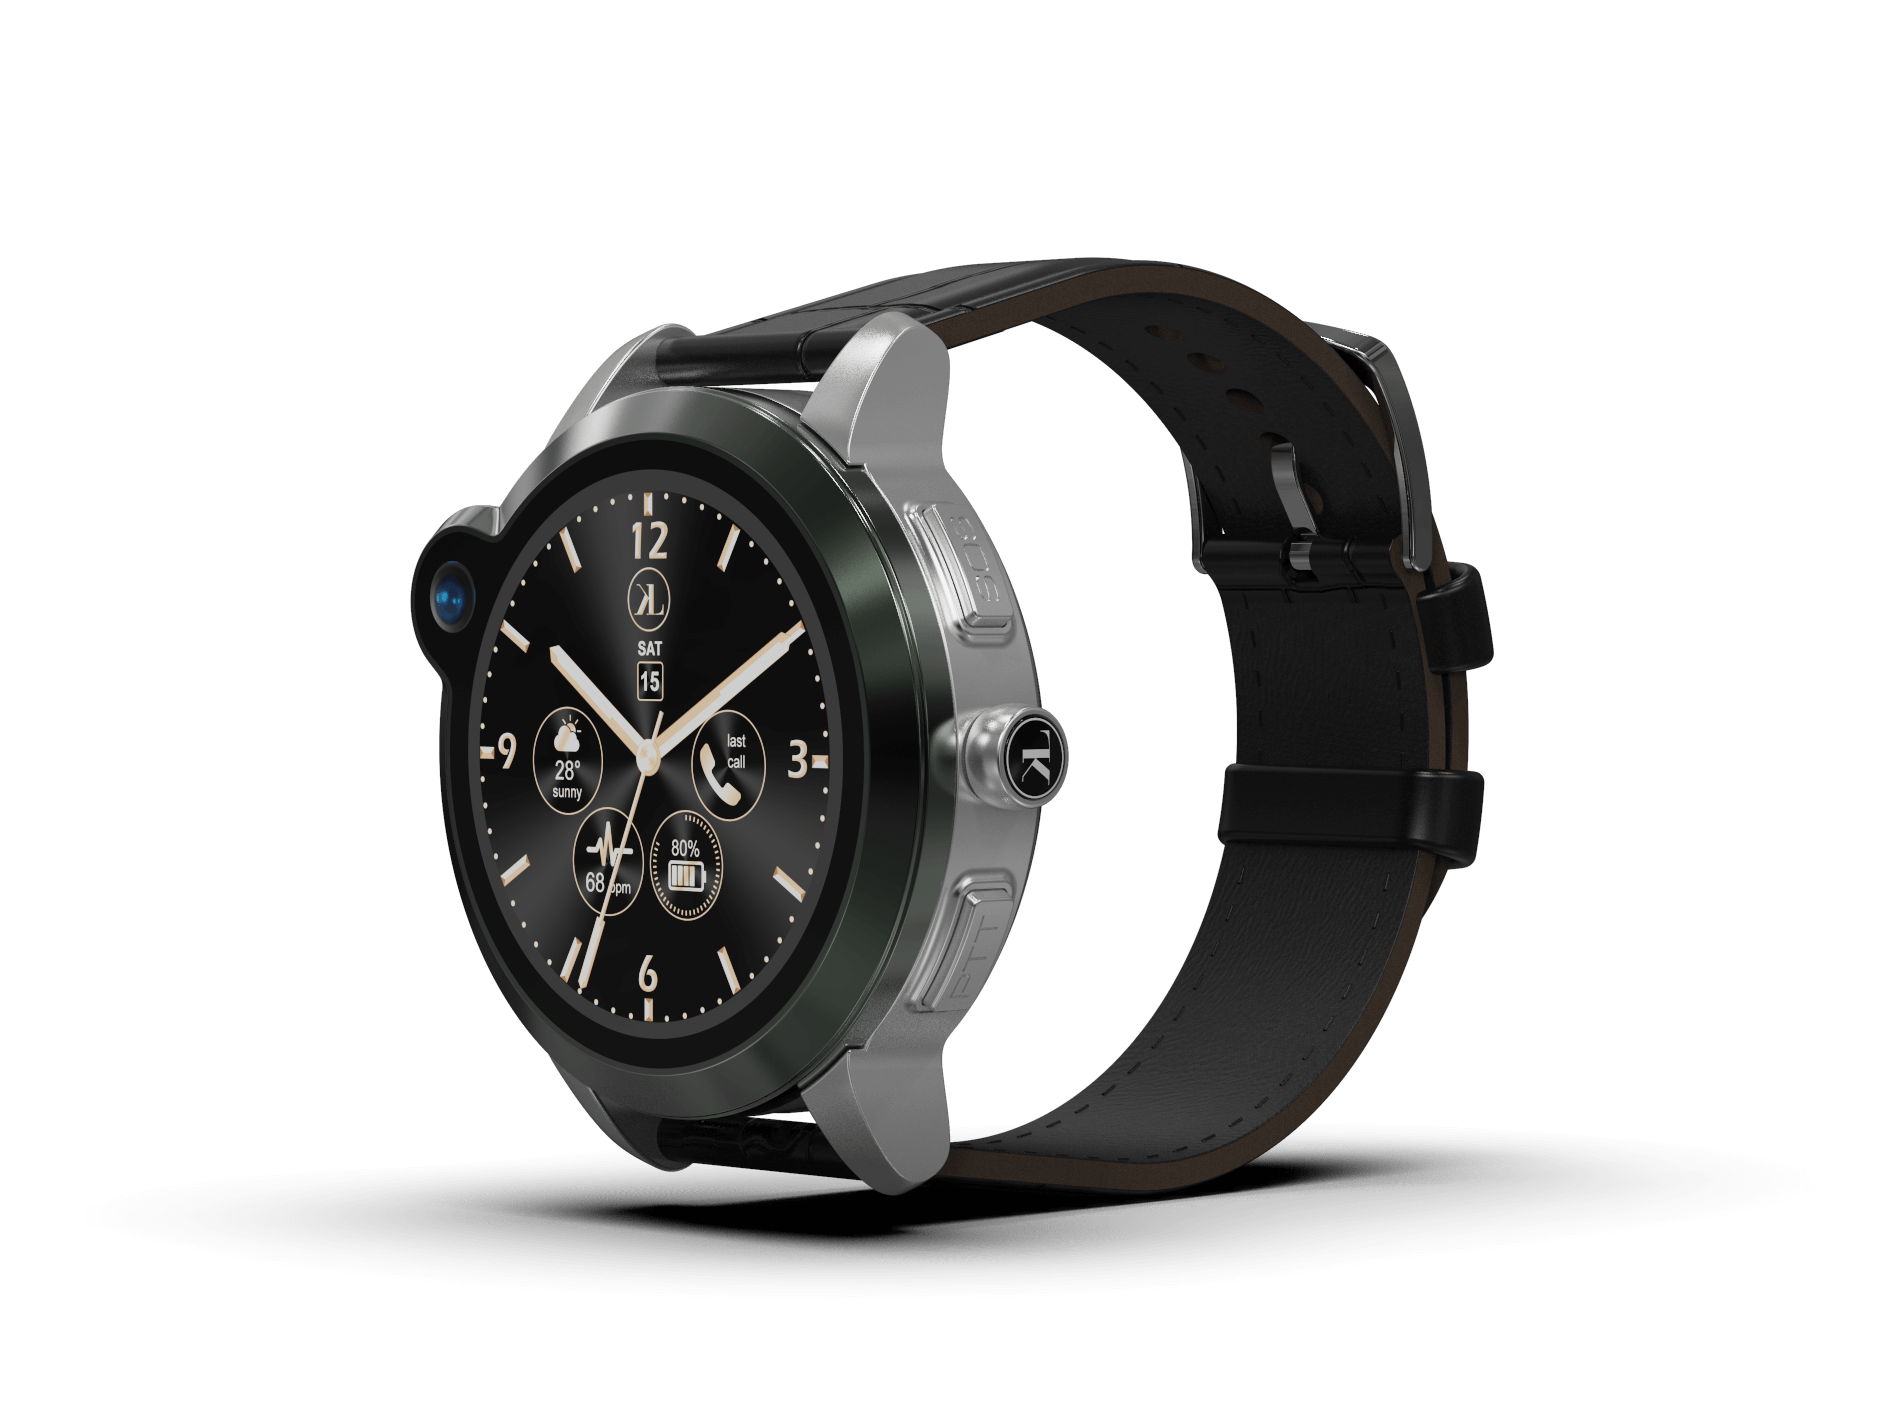 LooK Watch II Black mPERS Smartwatch Laipac